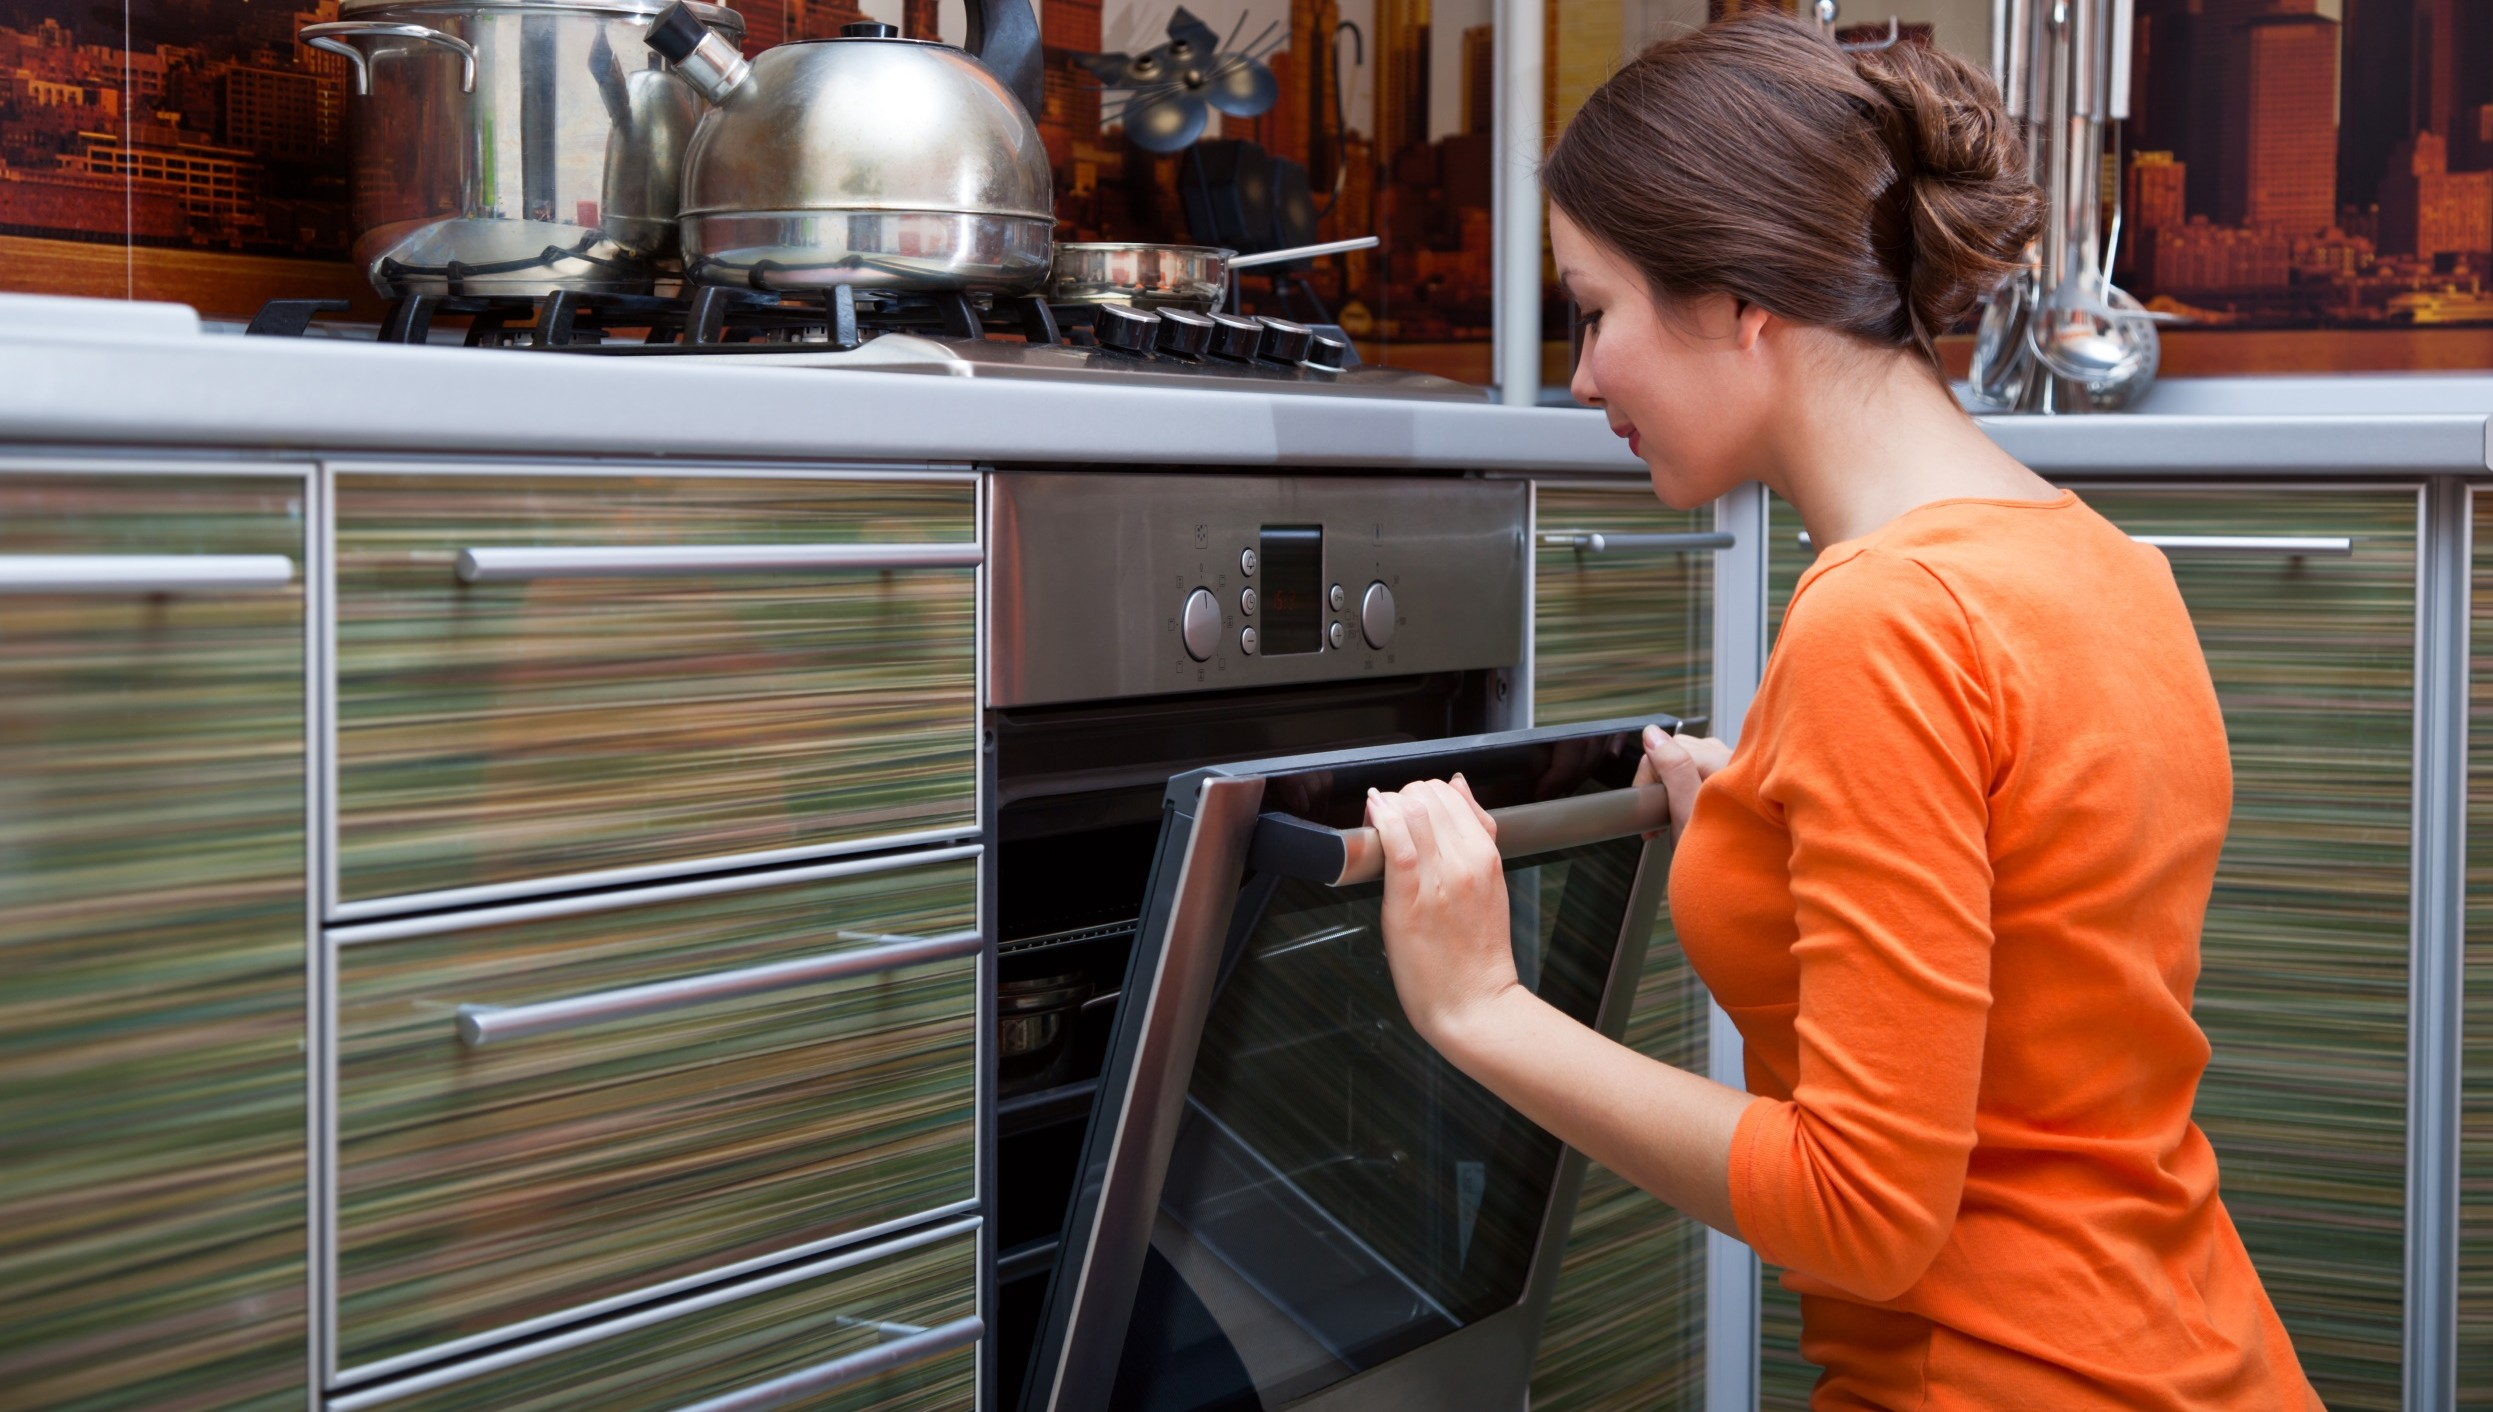 Oven Buying Guide Tips on Oven Capacity Wall Ovens and More